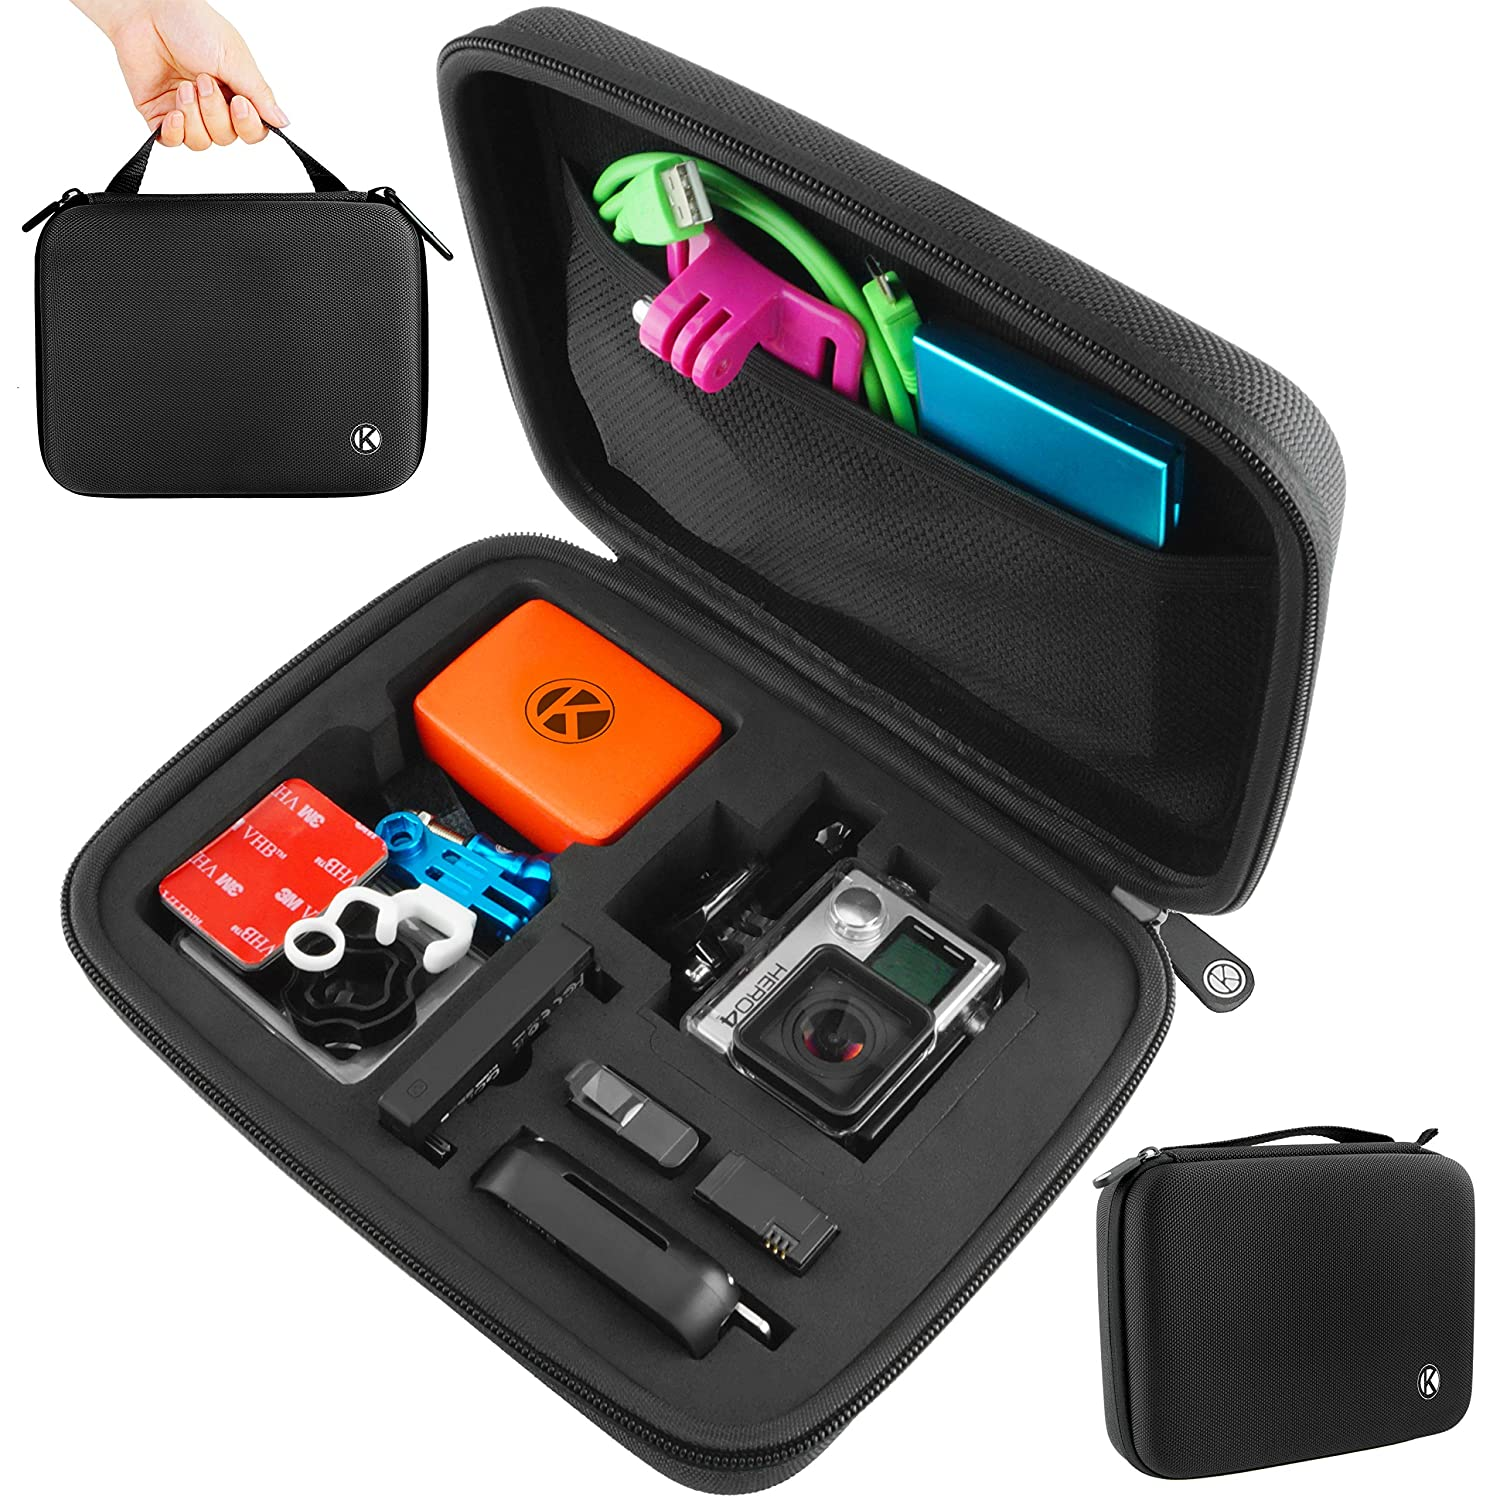 Small, Black Ideal for Travel or Home Storage CamKix/® Microfiber Cleaning Cloth Included Complete Protection for Your GoPro Camera GoPro Case by CamKix/® for GoPro Hero 1//2//3//3+//4 and Accessories